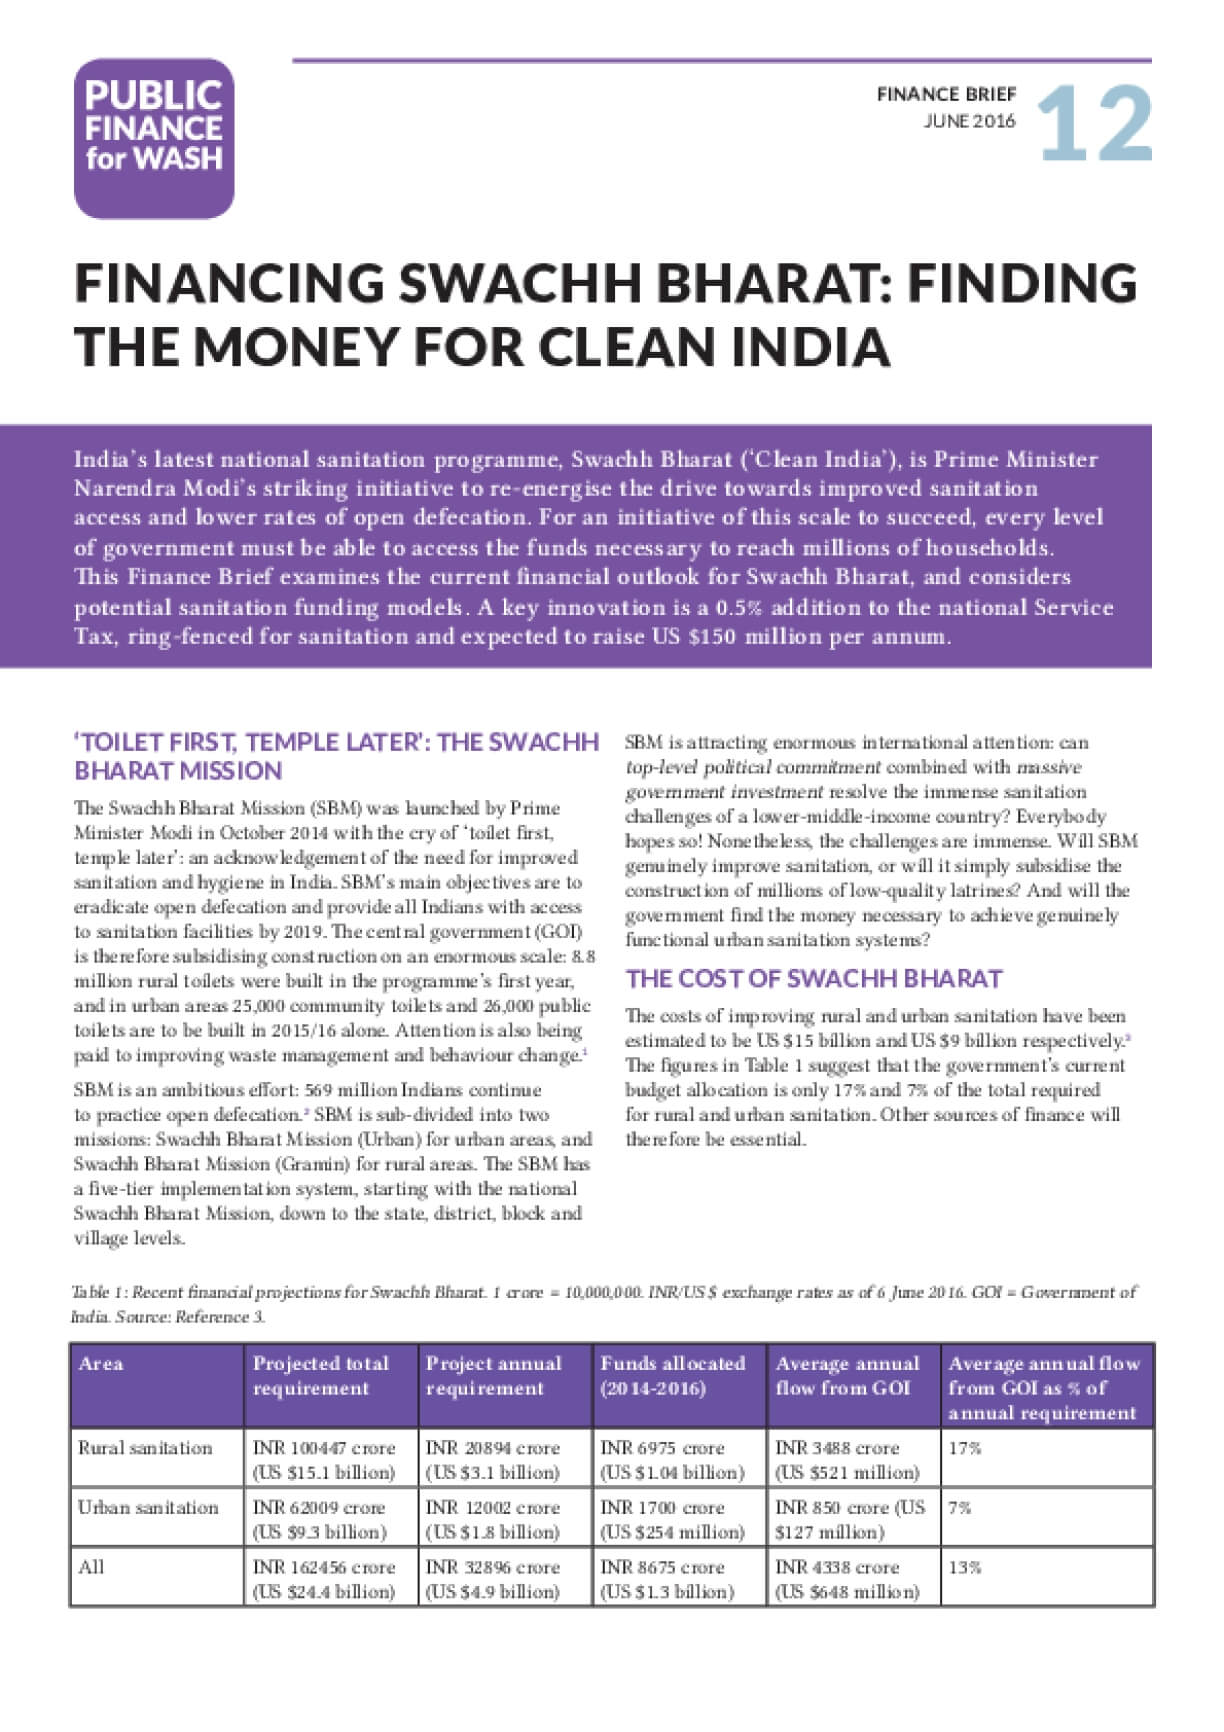 Financing Swachh Bharat: Finding the money for Clean India